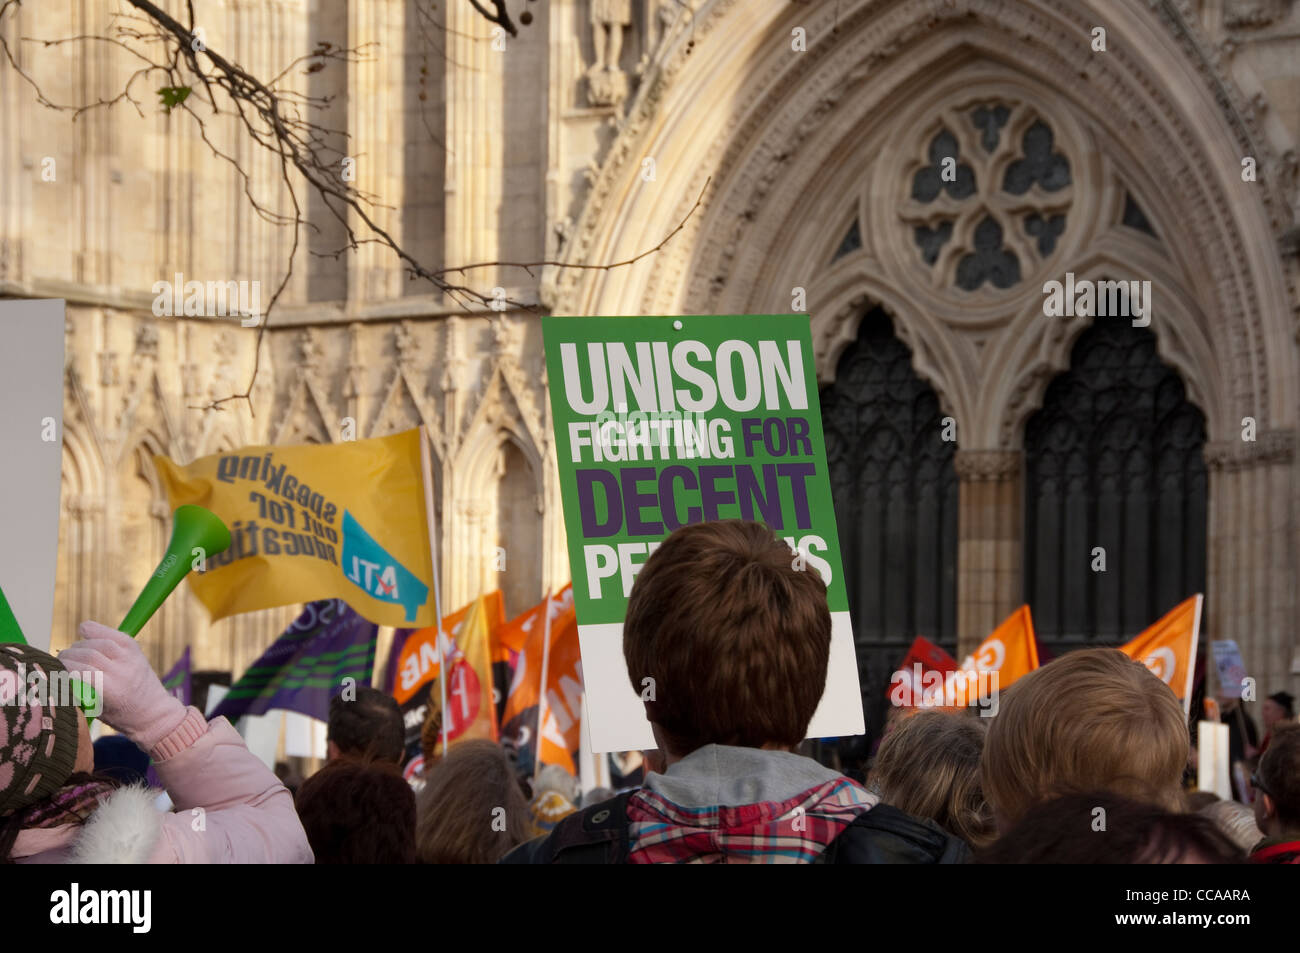 Demonstrators from Unison trade union protest for better pensions outside York Minster North Yorkshire England UK - Stock Image